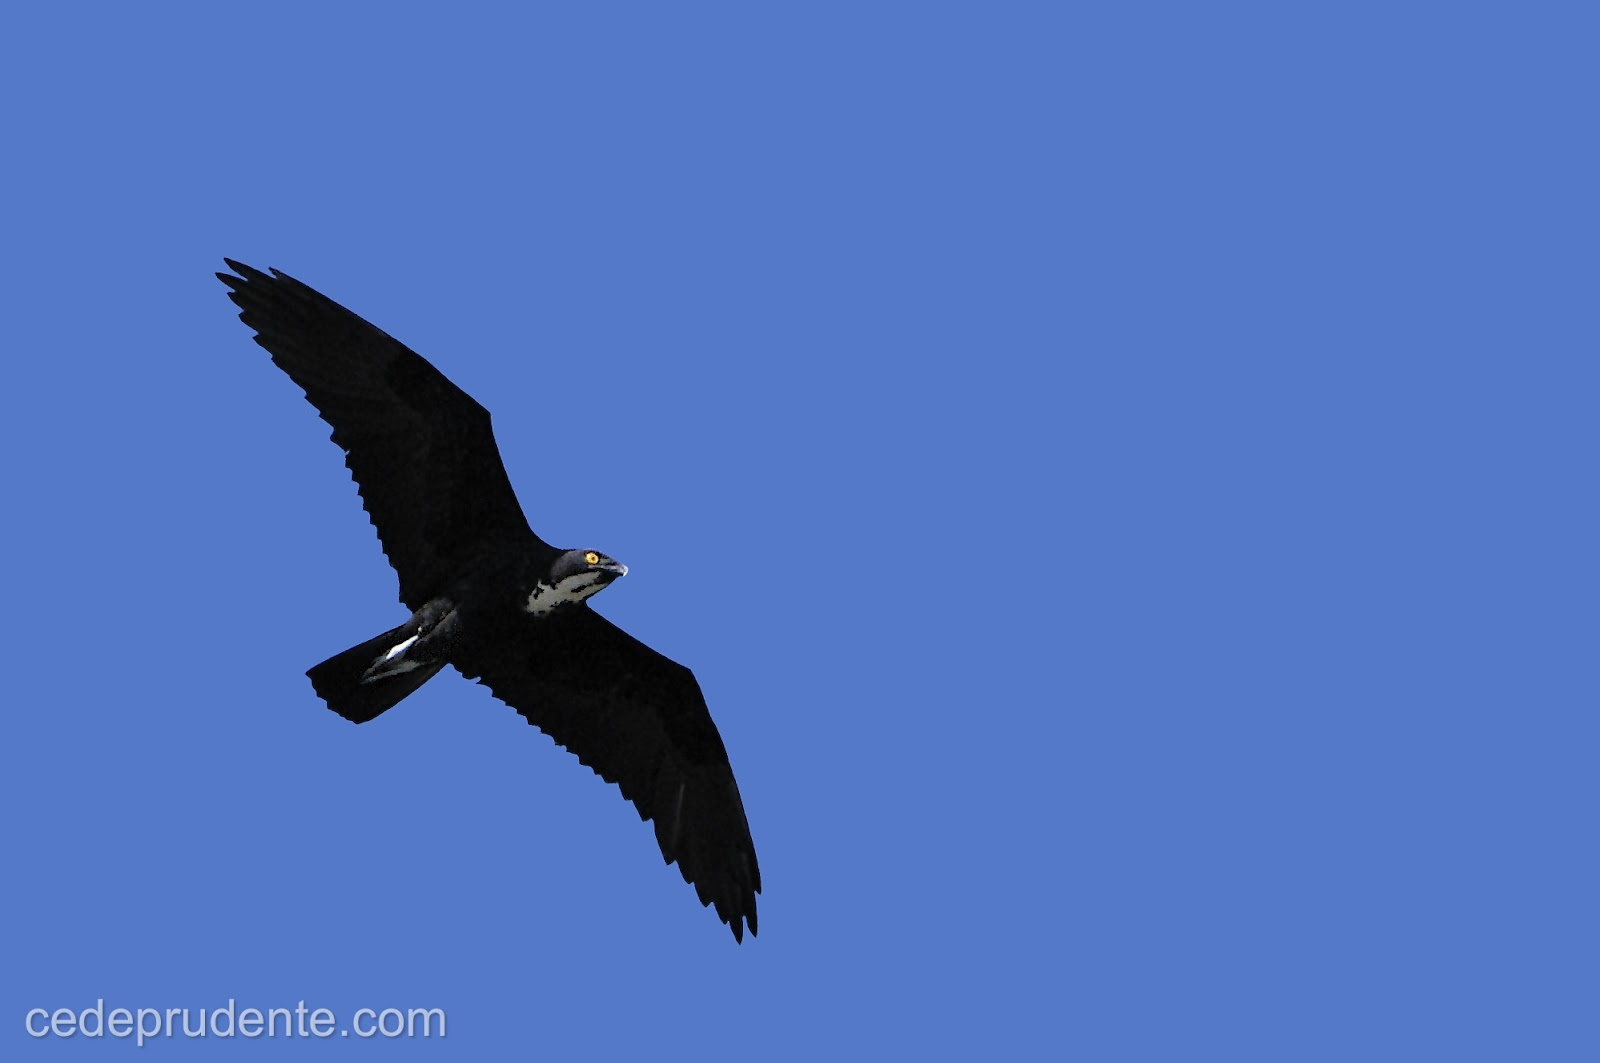 flying falcon silhouette